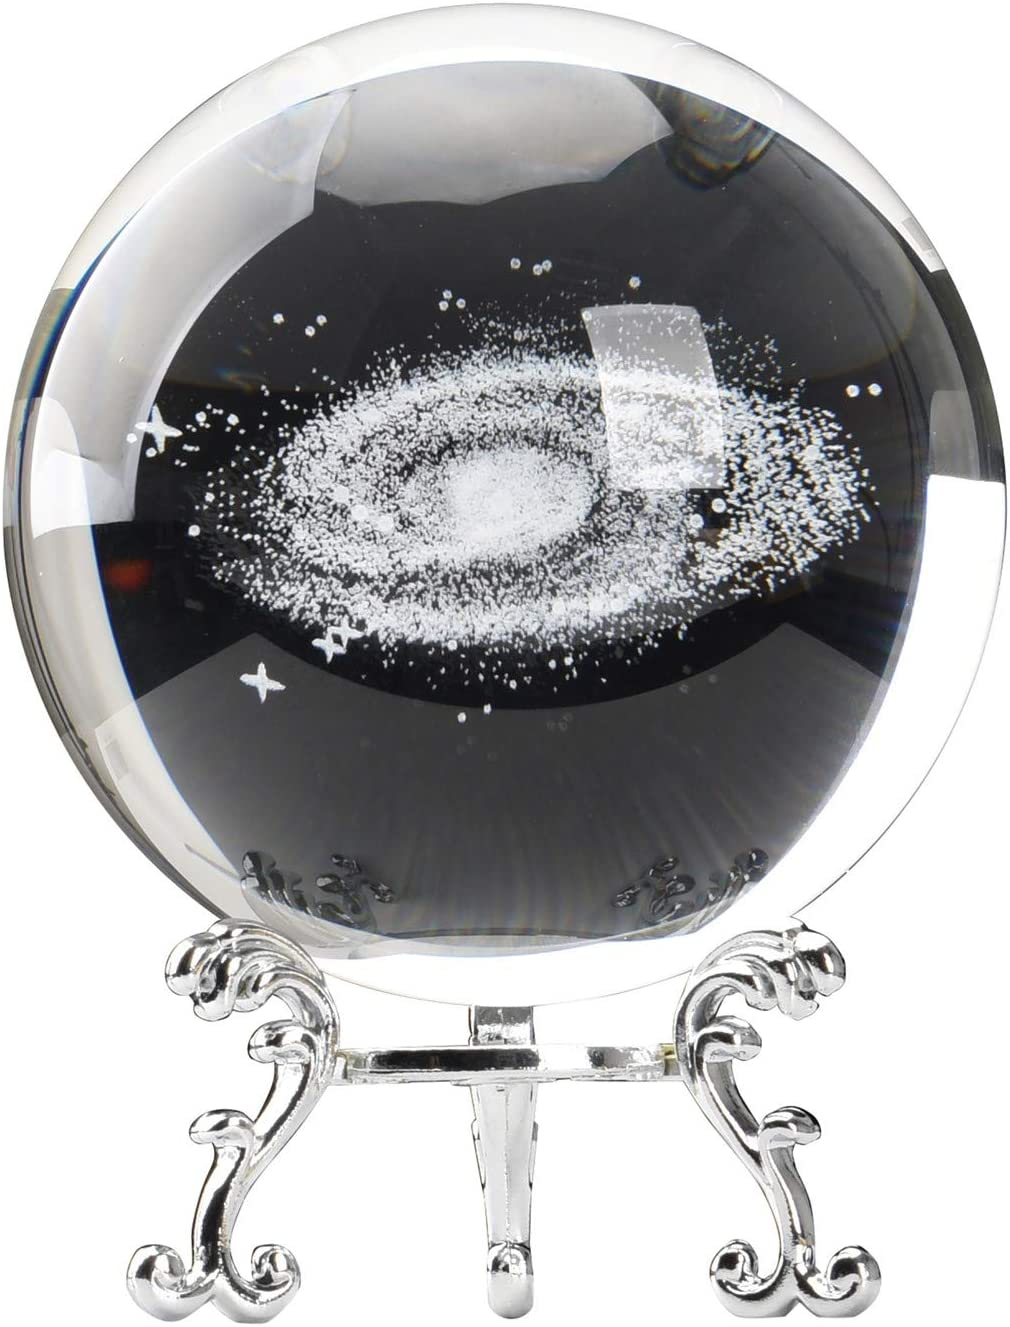 Aircee 3D Model of Galaxy Crystal Ball, Decorative Planets Glass Ball with A Stand, Great Gifts, Educational Toys, Home Office Decor, Solar System Sphere with Gift Box